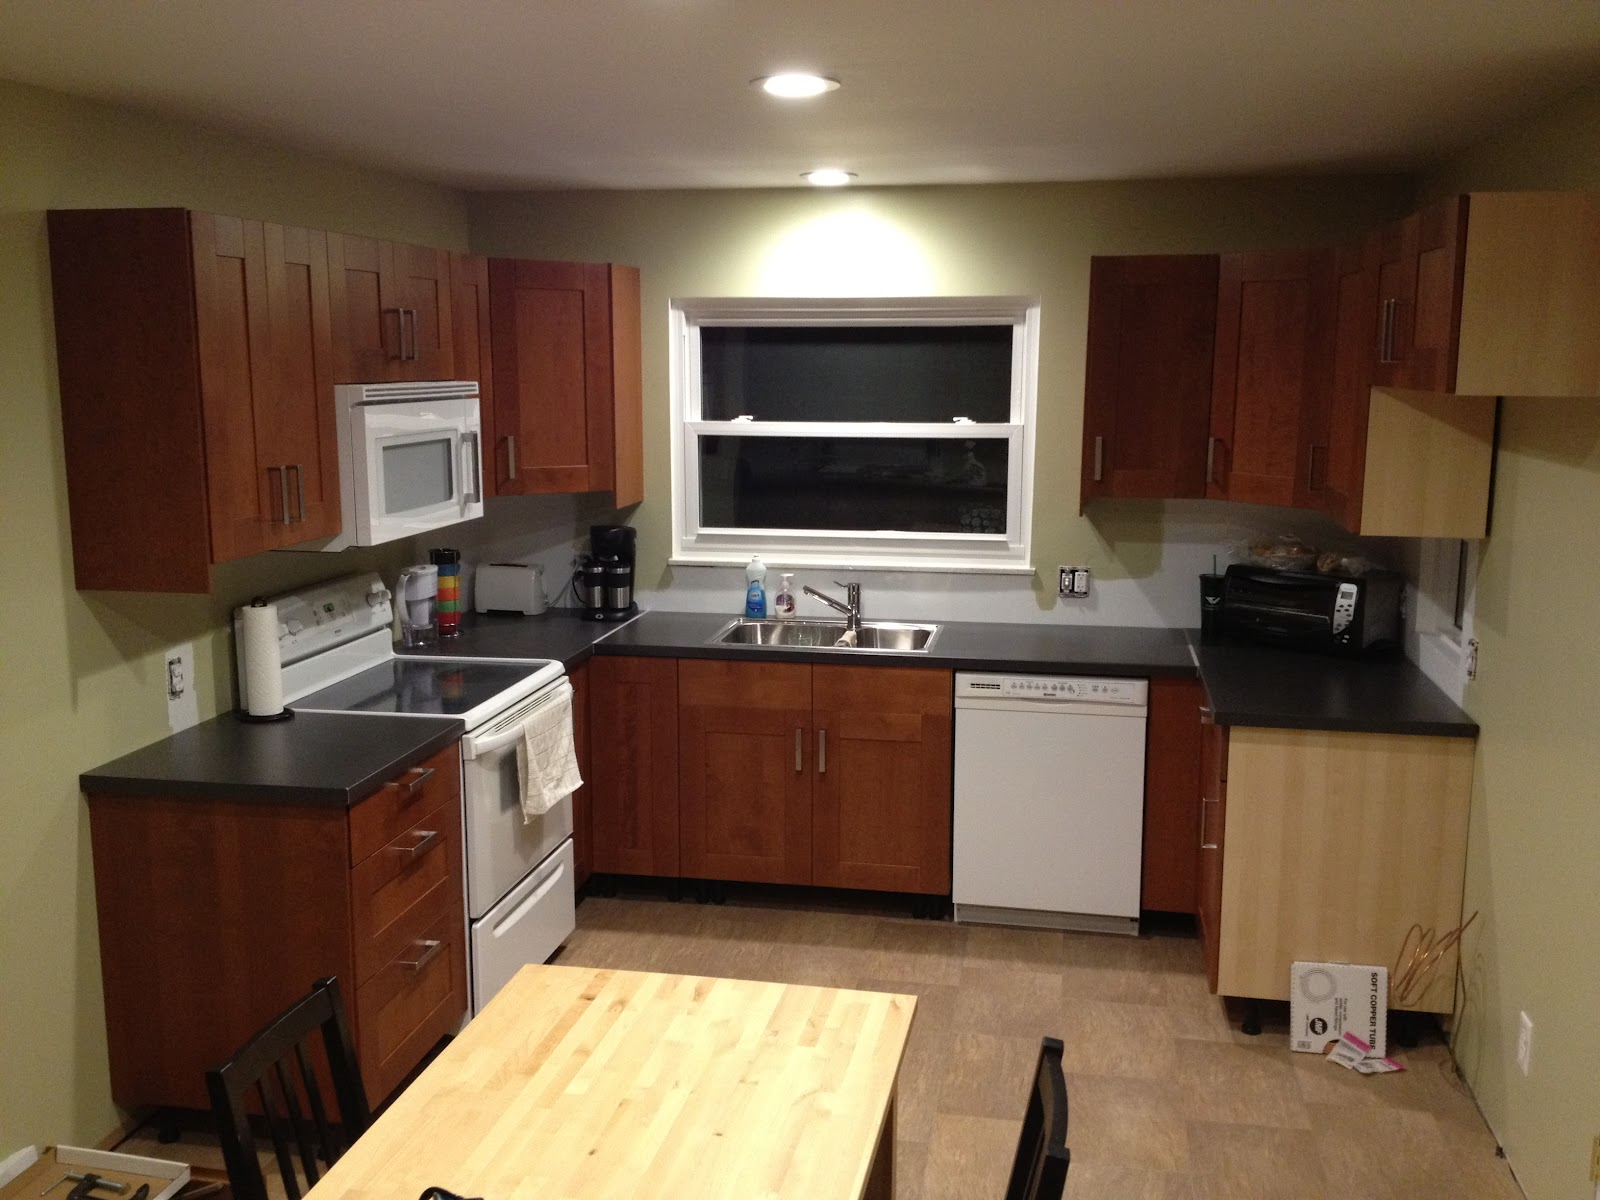 & Our IKEA Kitchen: Dishwasher doors and more!